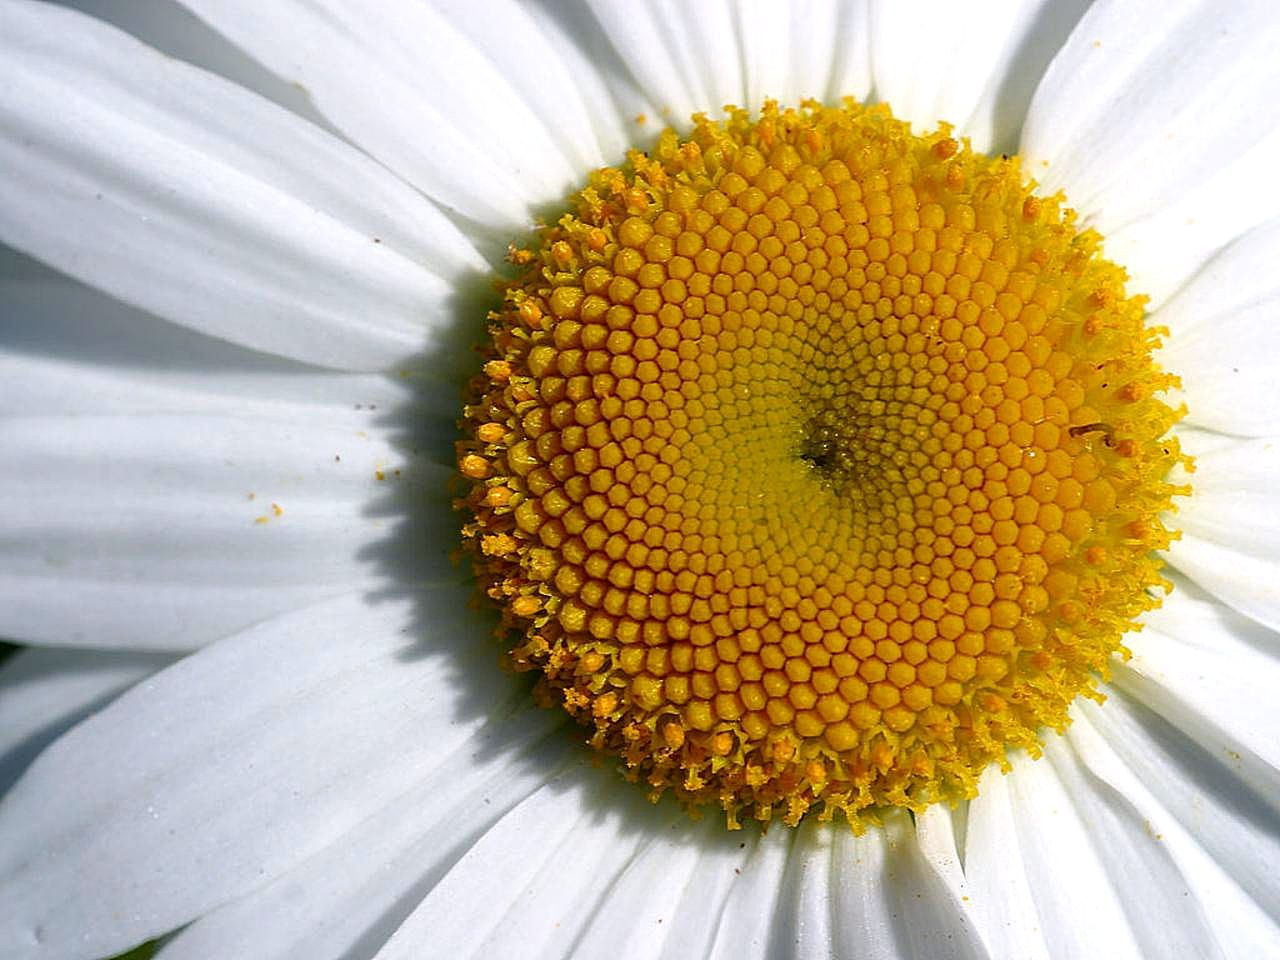 Free picture closeup daisy flower closeup daisy flower izmirmasajfo